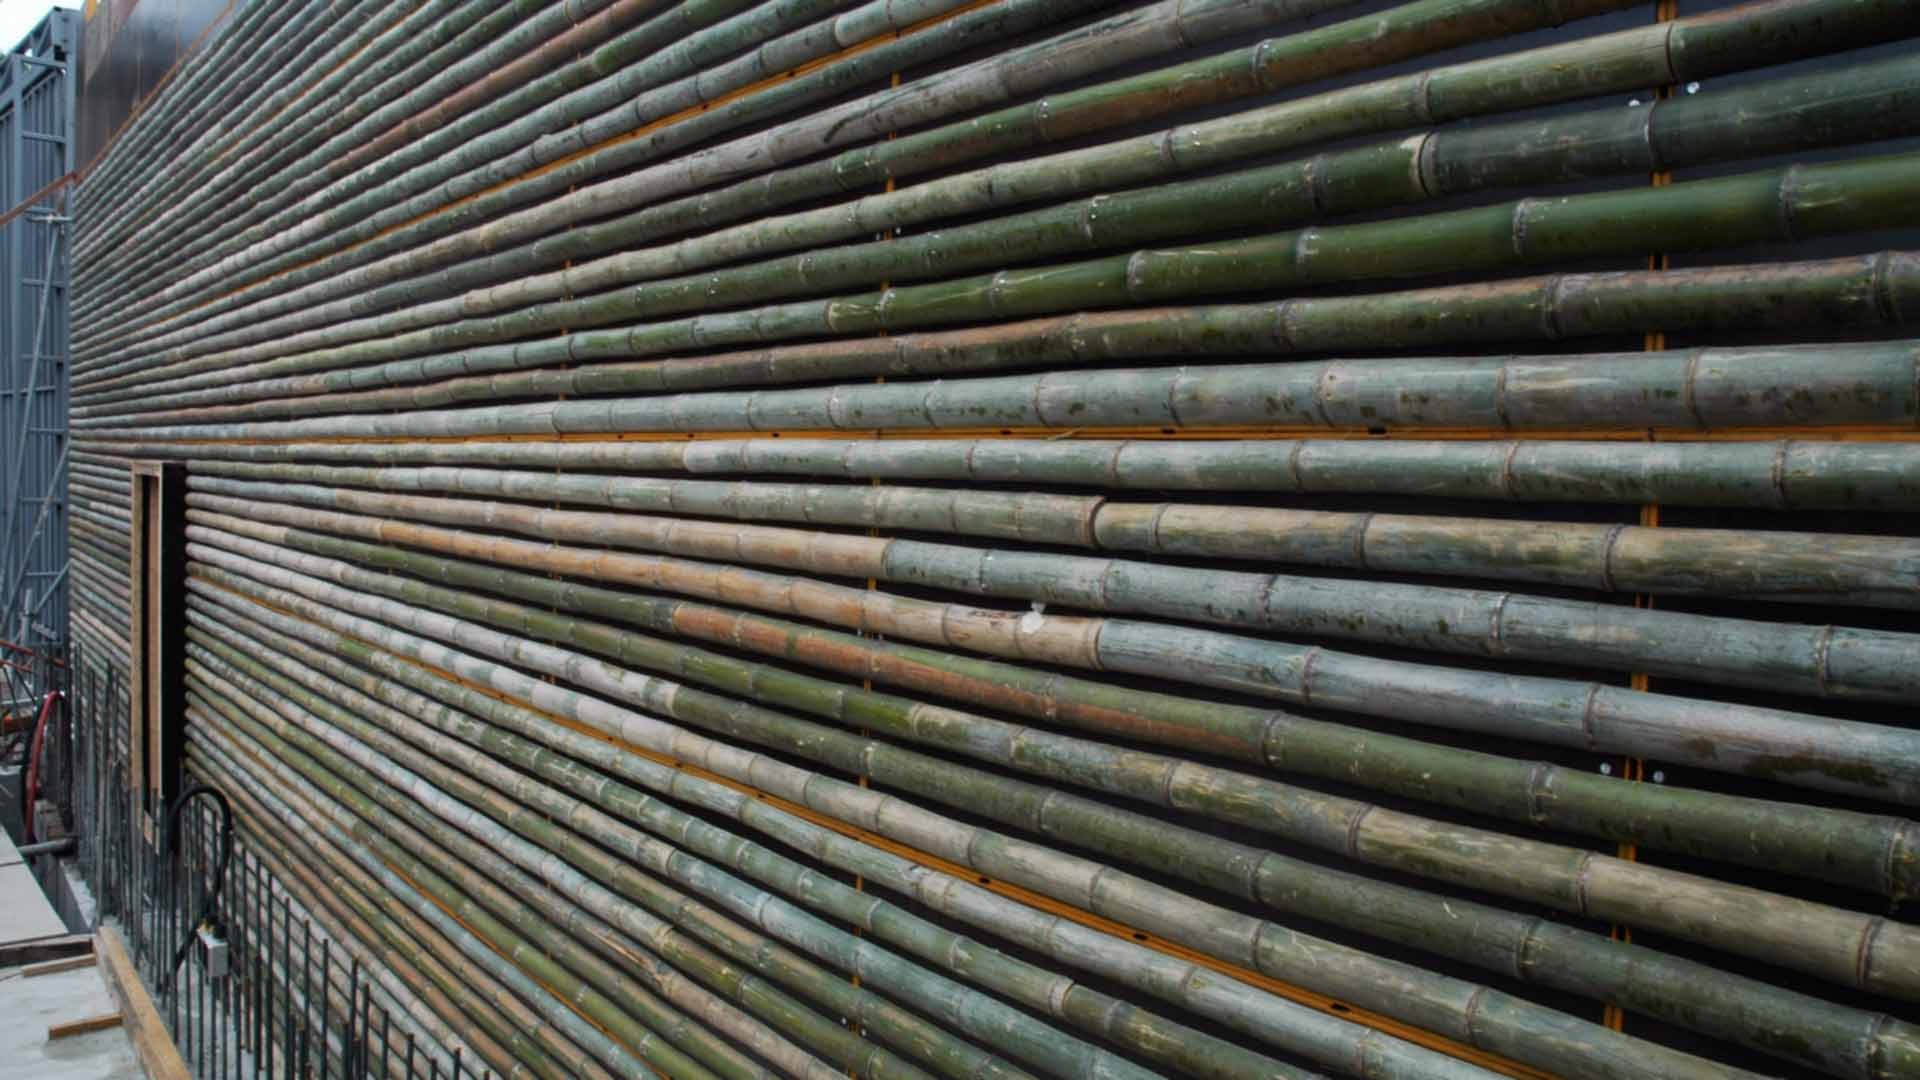 Bamboo form construction for Daeyang Gallery and House.